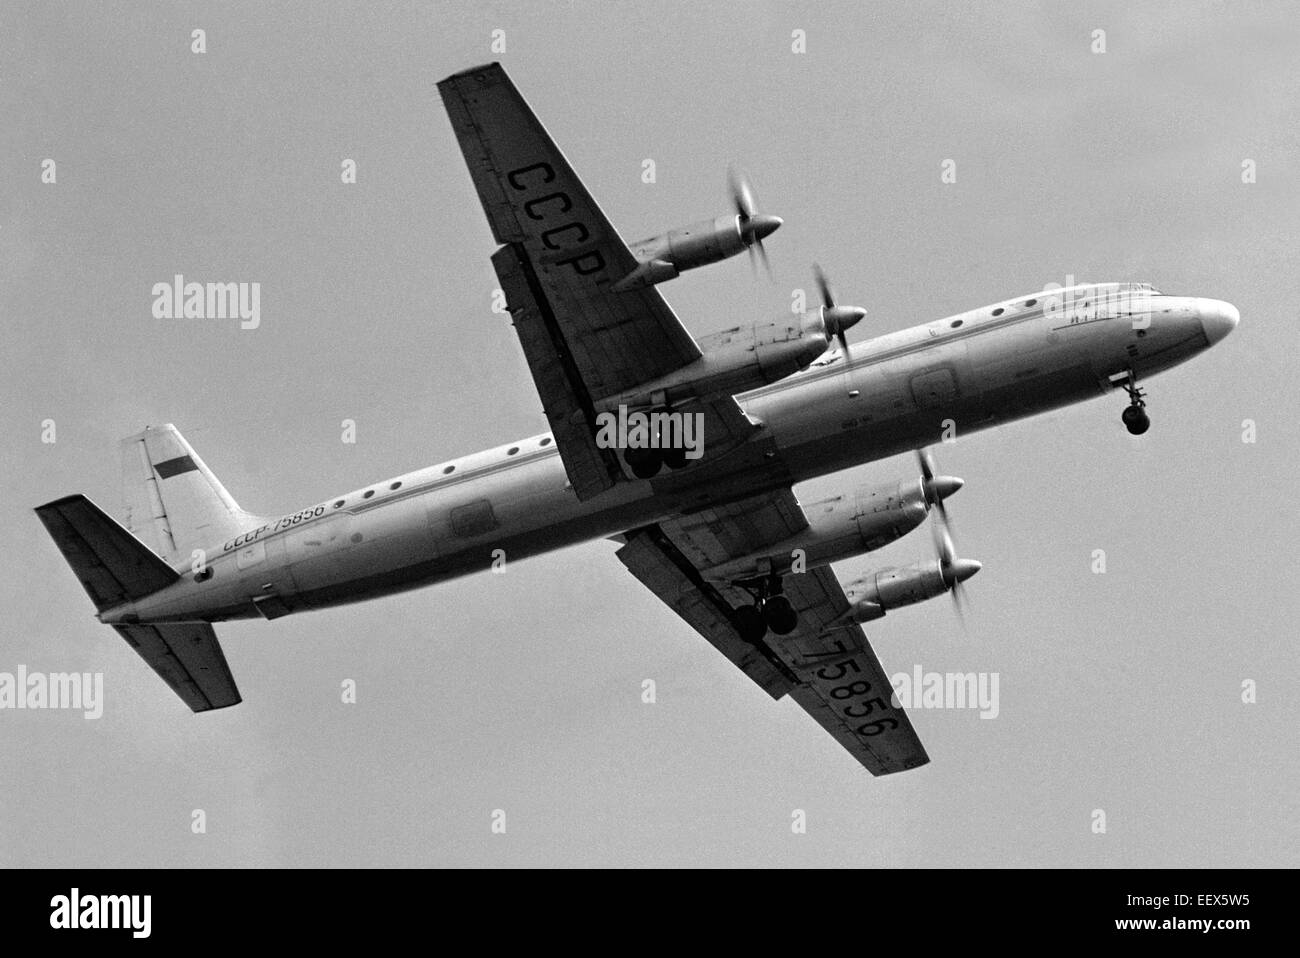 The Soviet passenger aircraft IL-18 before landing at the airport in Leningrad. 1976. - Stock Image